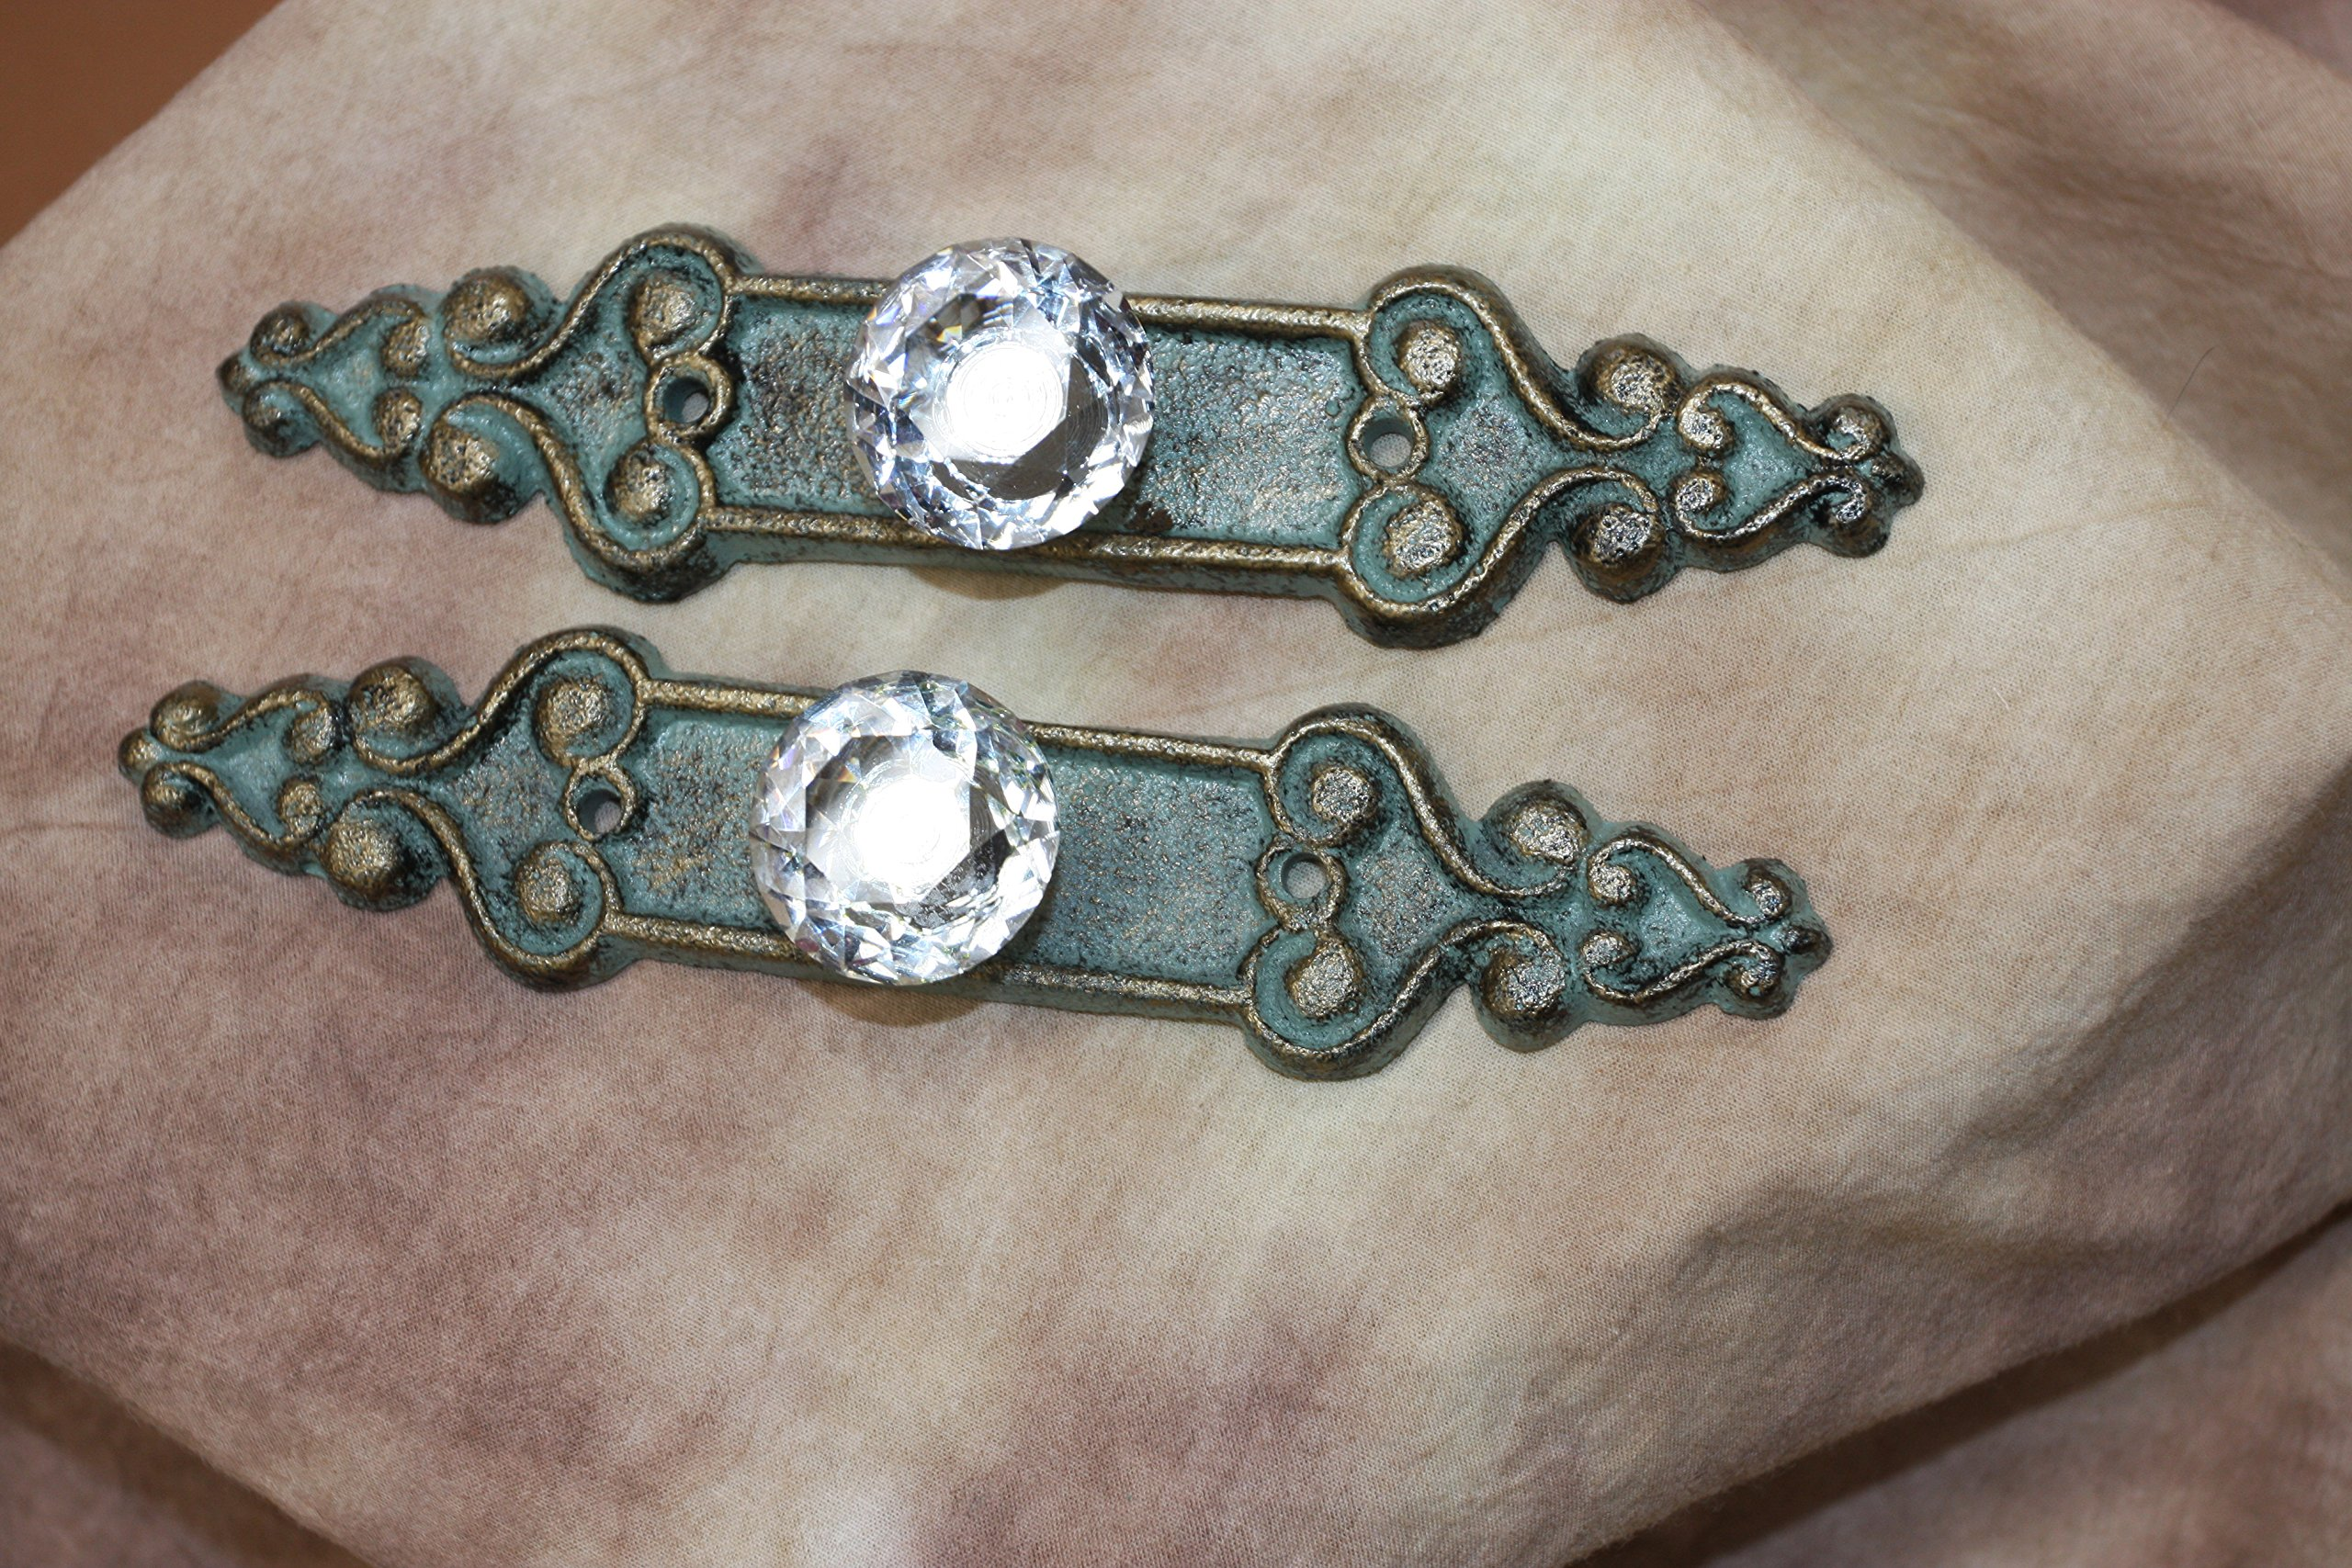 Elegant Crystal Drawer Pulls Cast Iron Bronze-look Backplate, 7 inch long, HW-25, Set of 6 by Cast Iron Decor (Image #5)